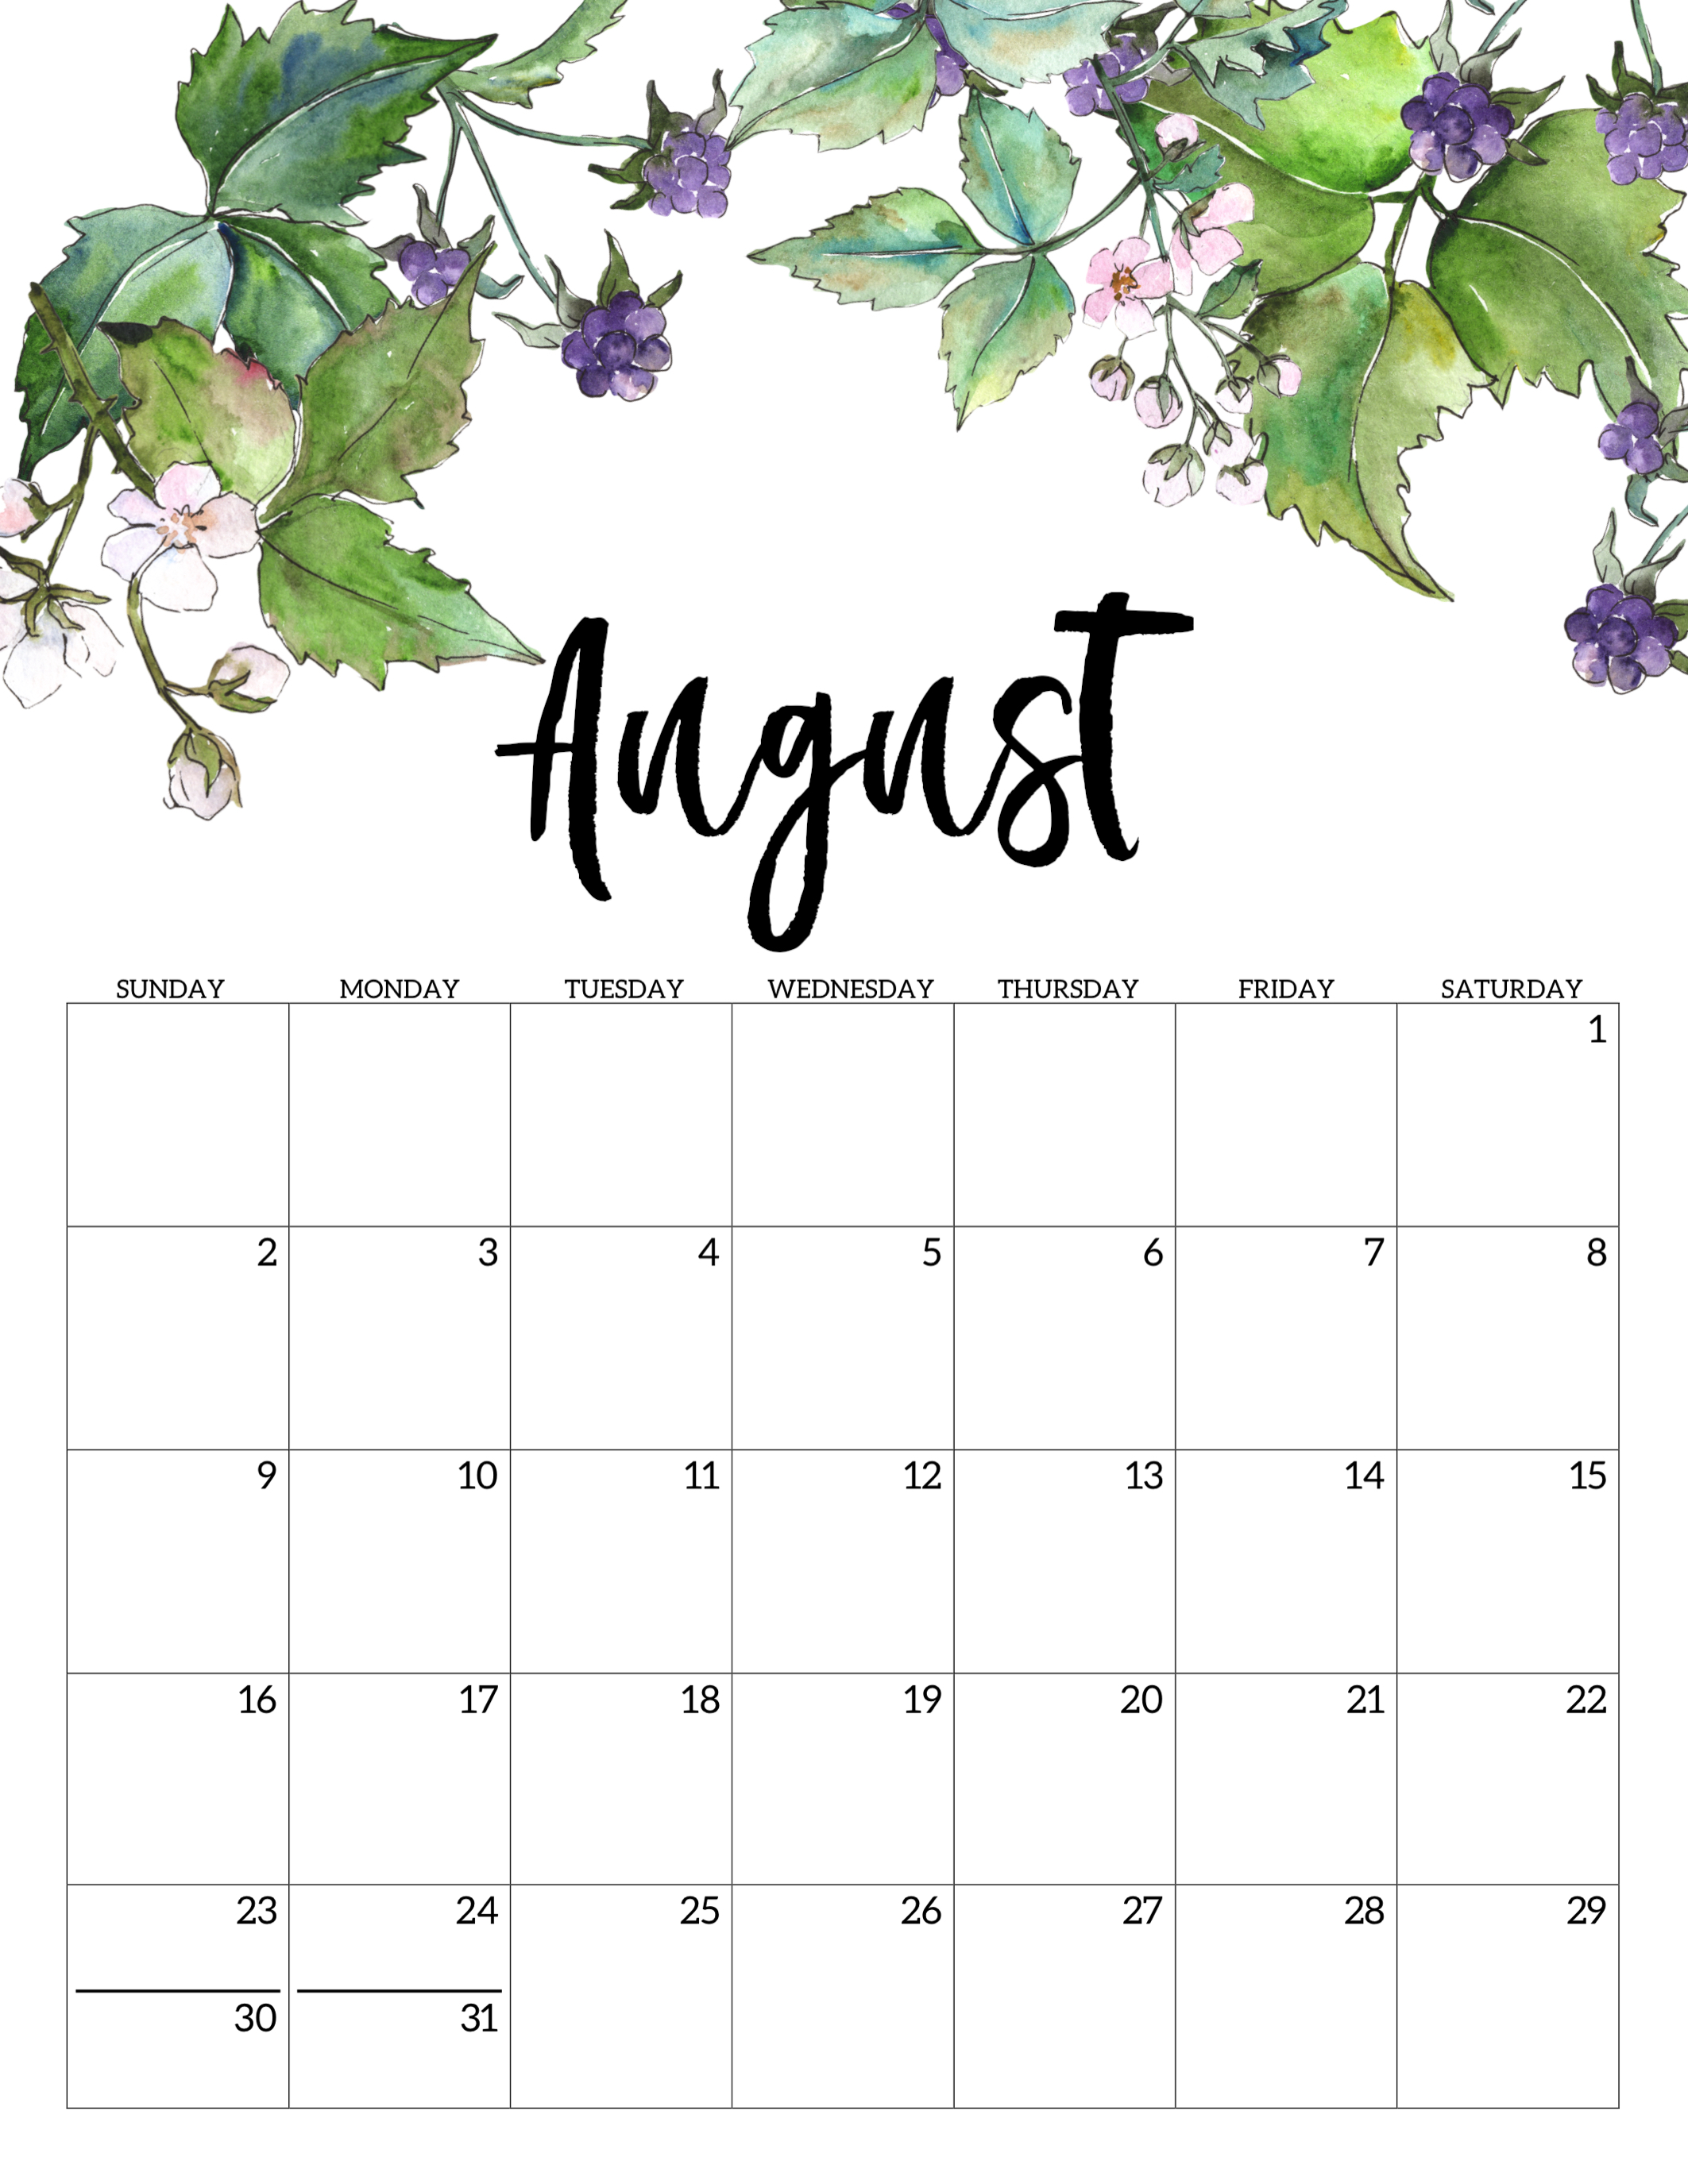 Jcps Calendar 2020-2021 Top 10 Punto Medio Noticias | Calendar 2020 August